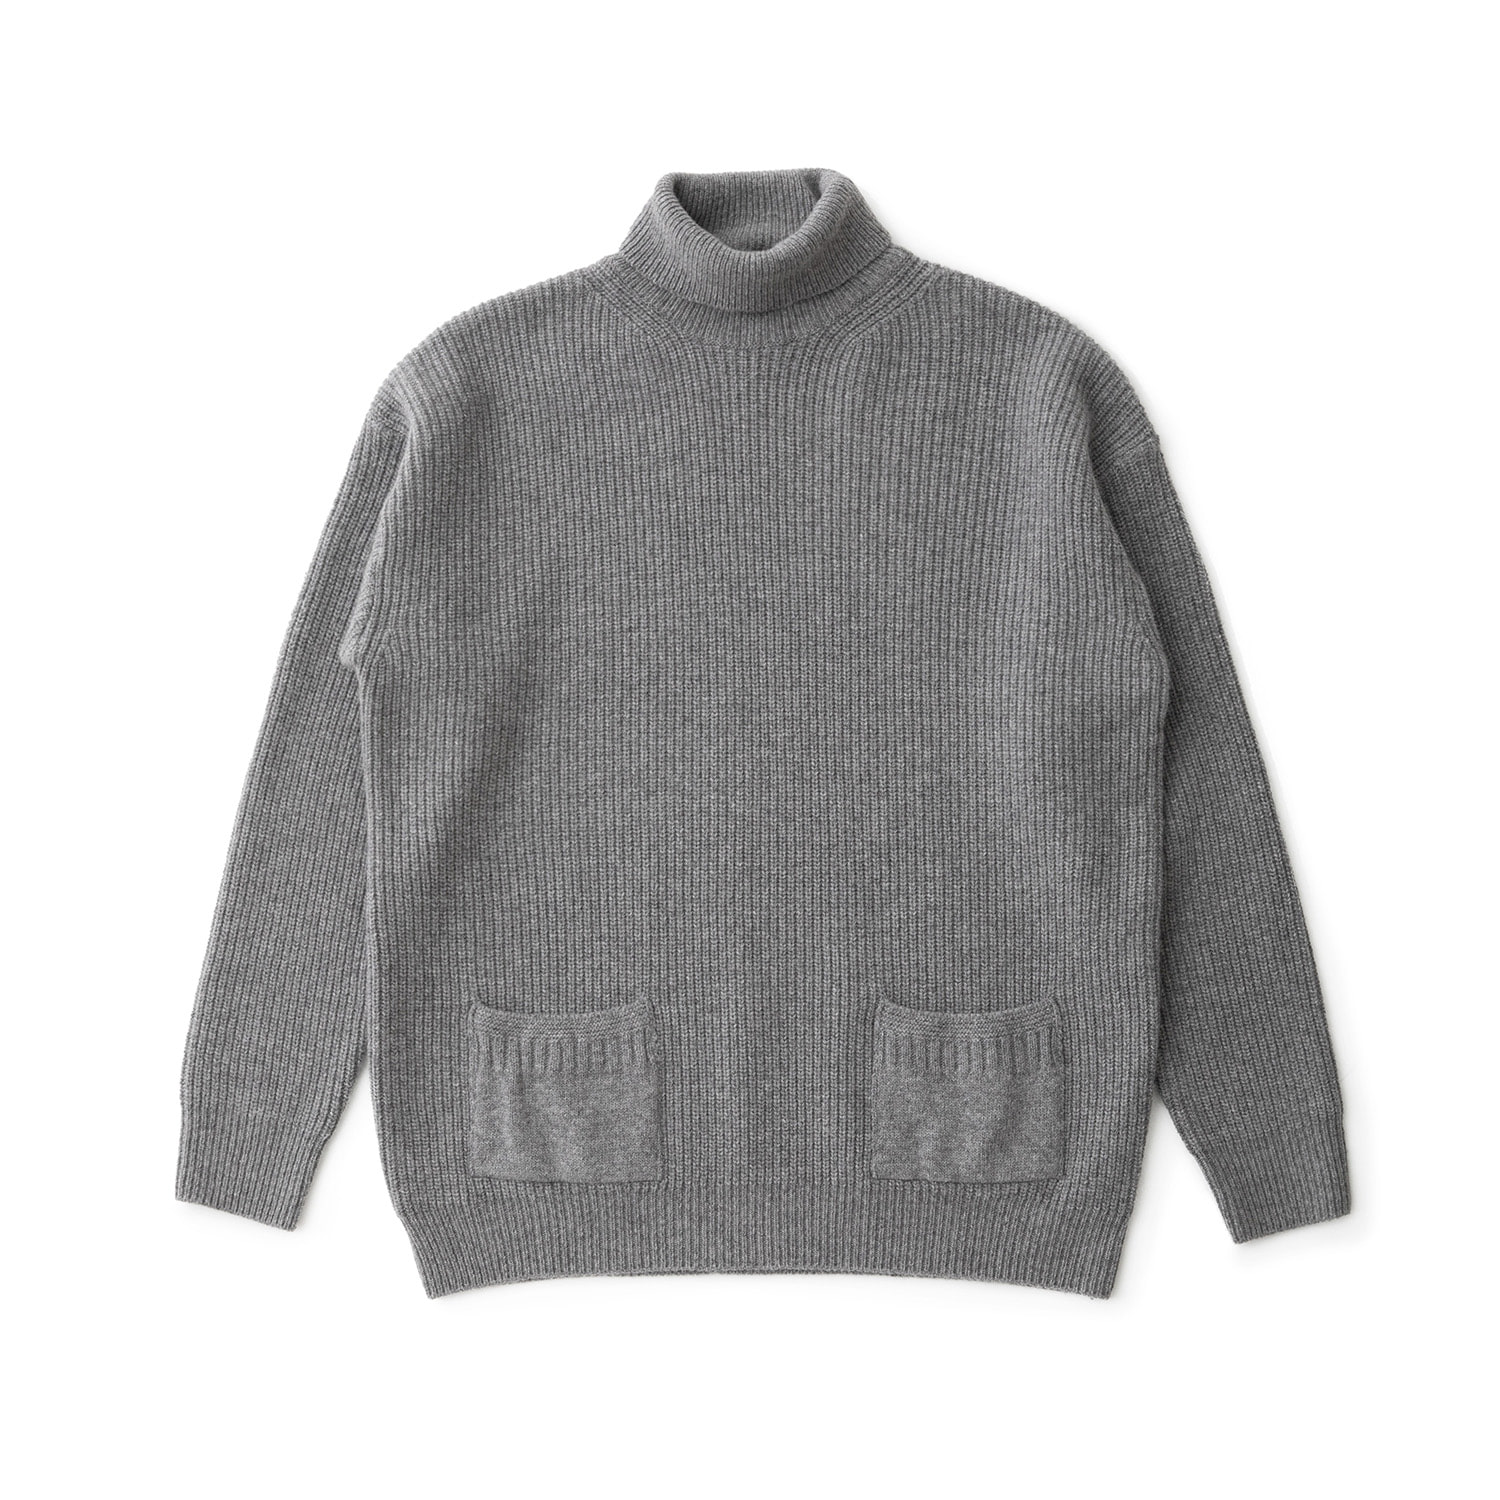 Ample Cashmere Turtleneck Pullover (Heather Gray)